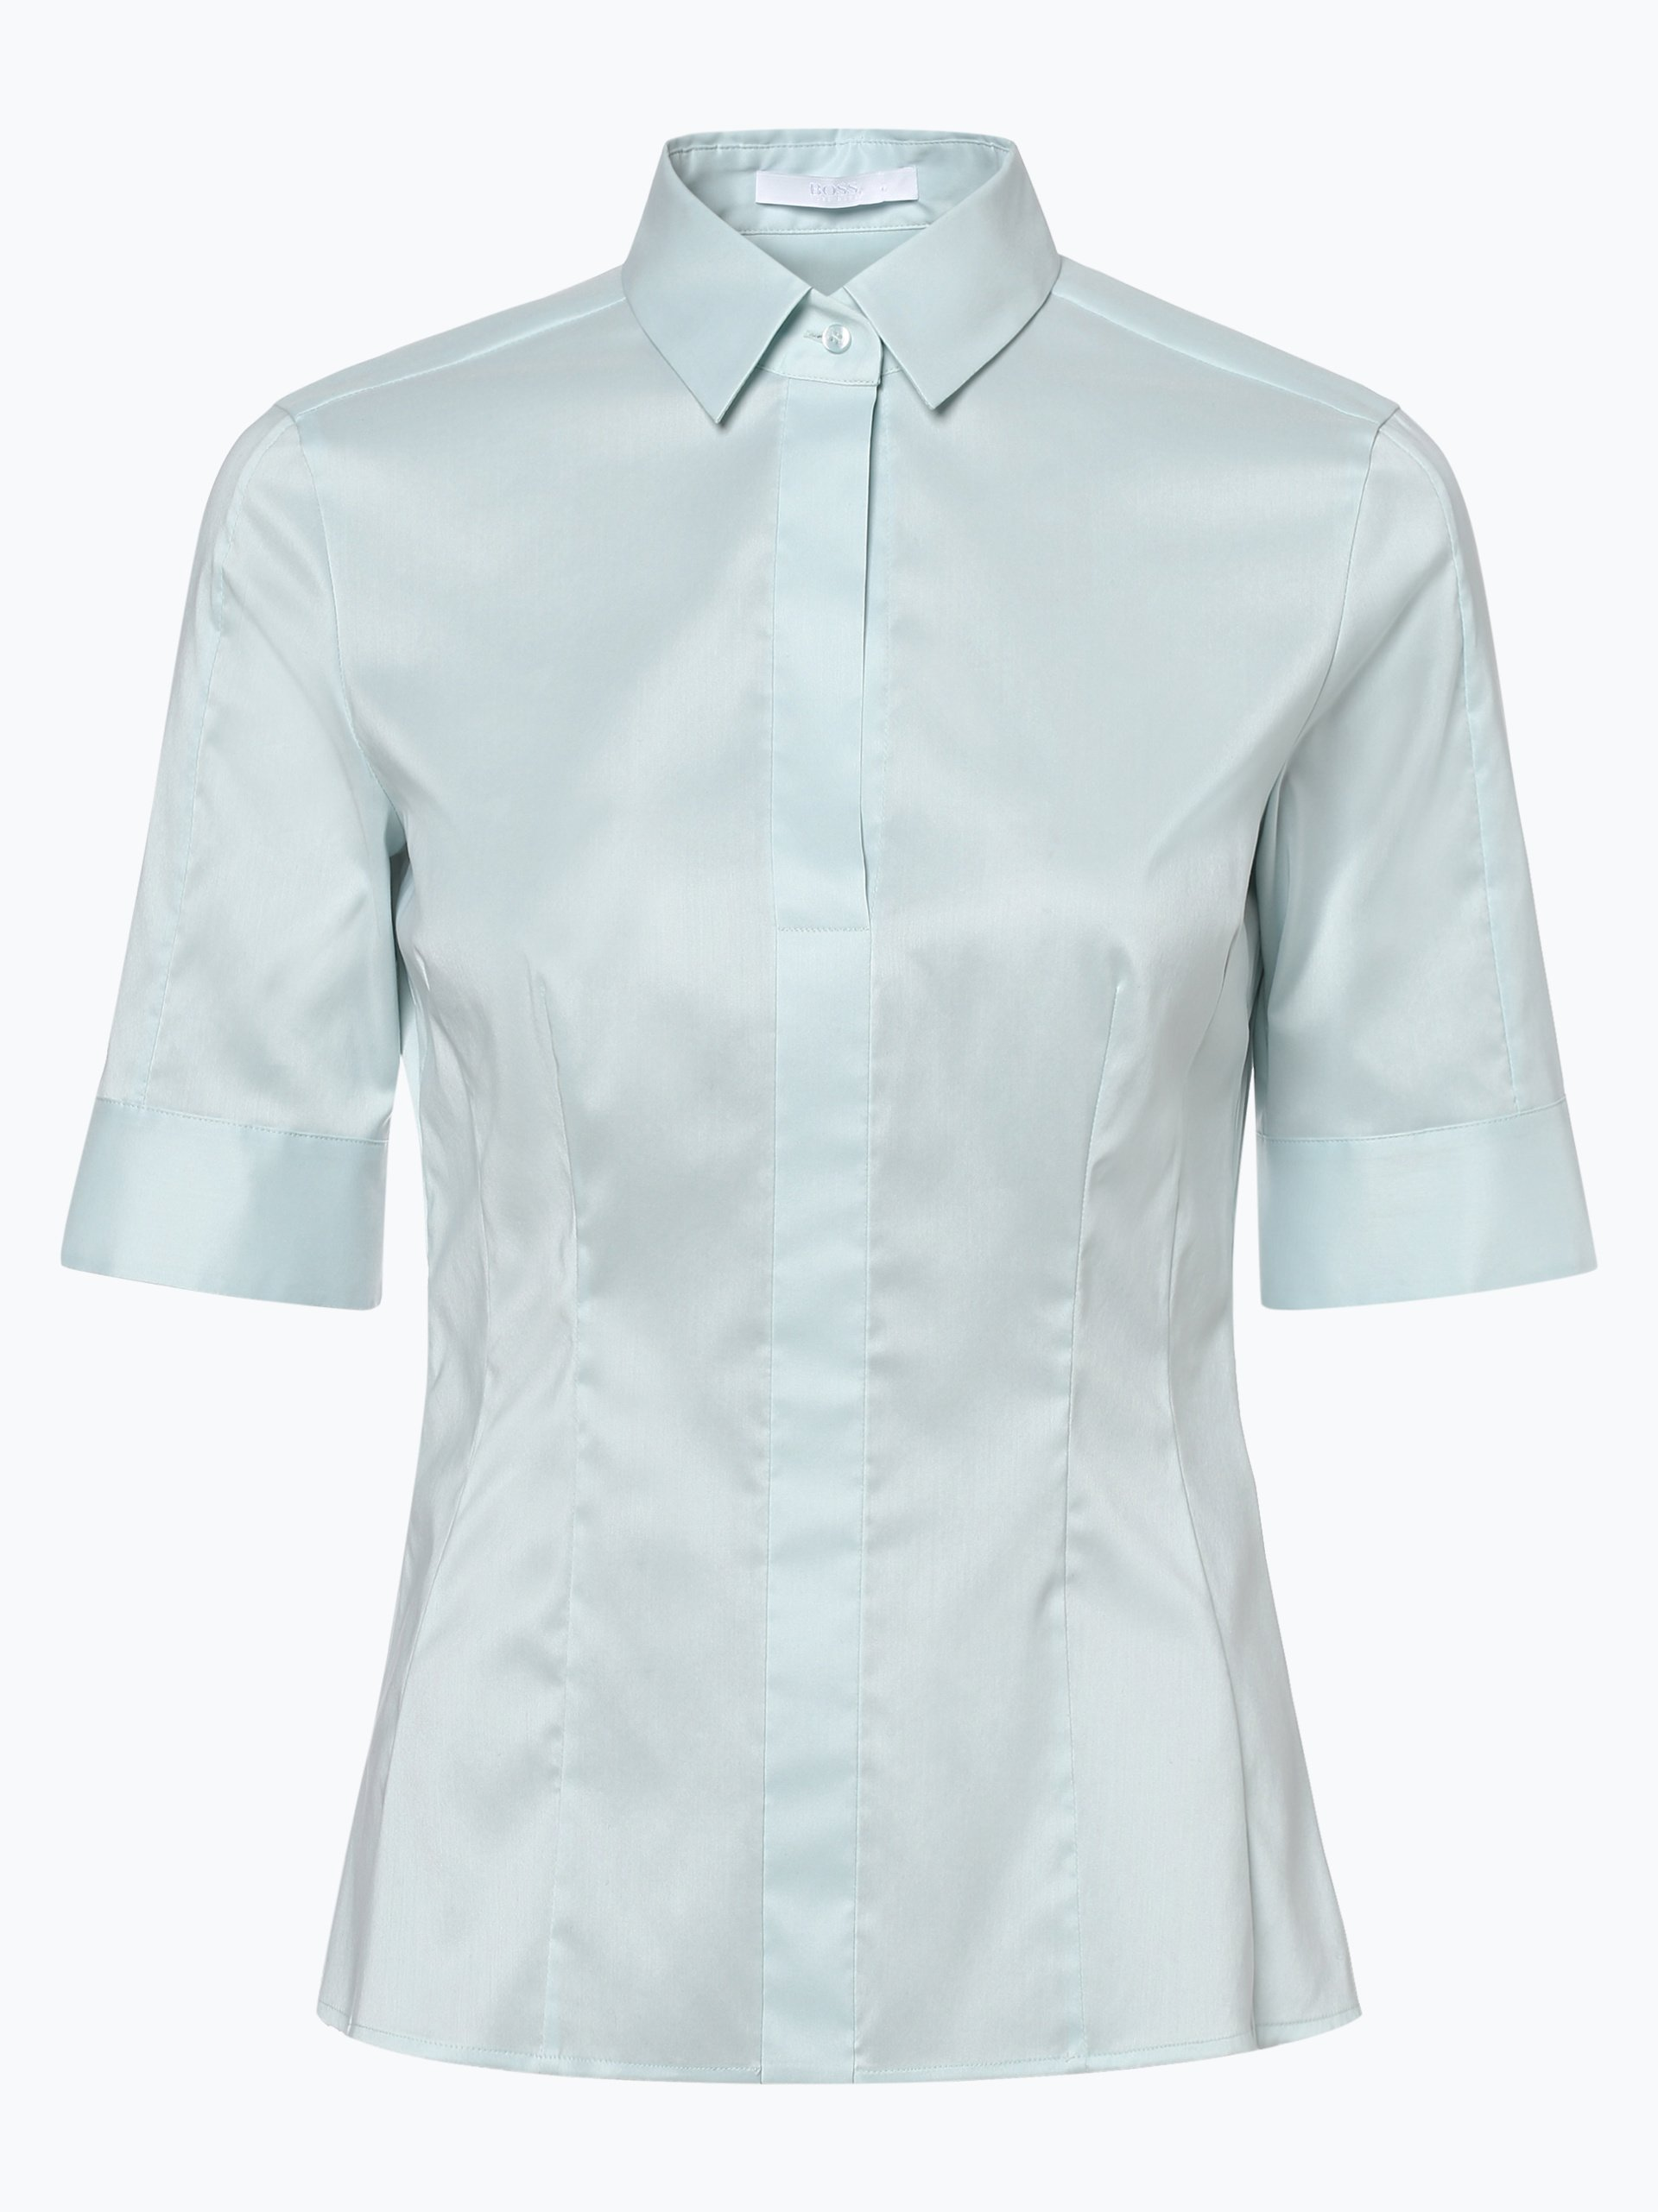 BOSS Damen Bluse - Bashini2